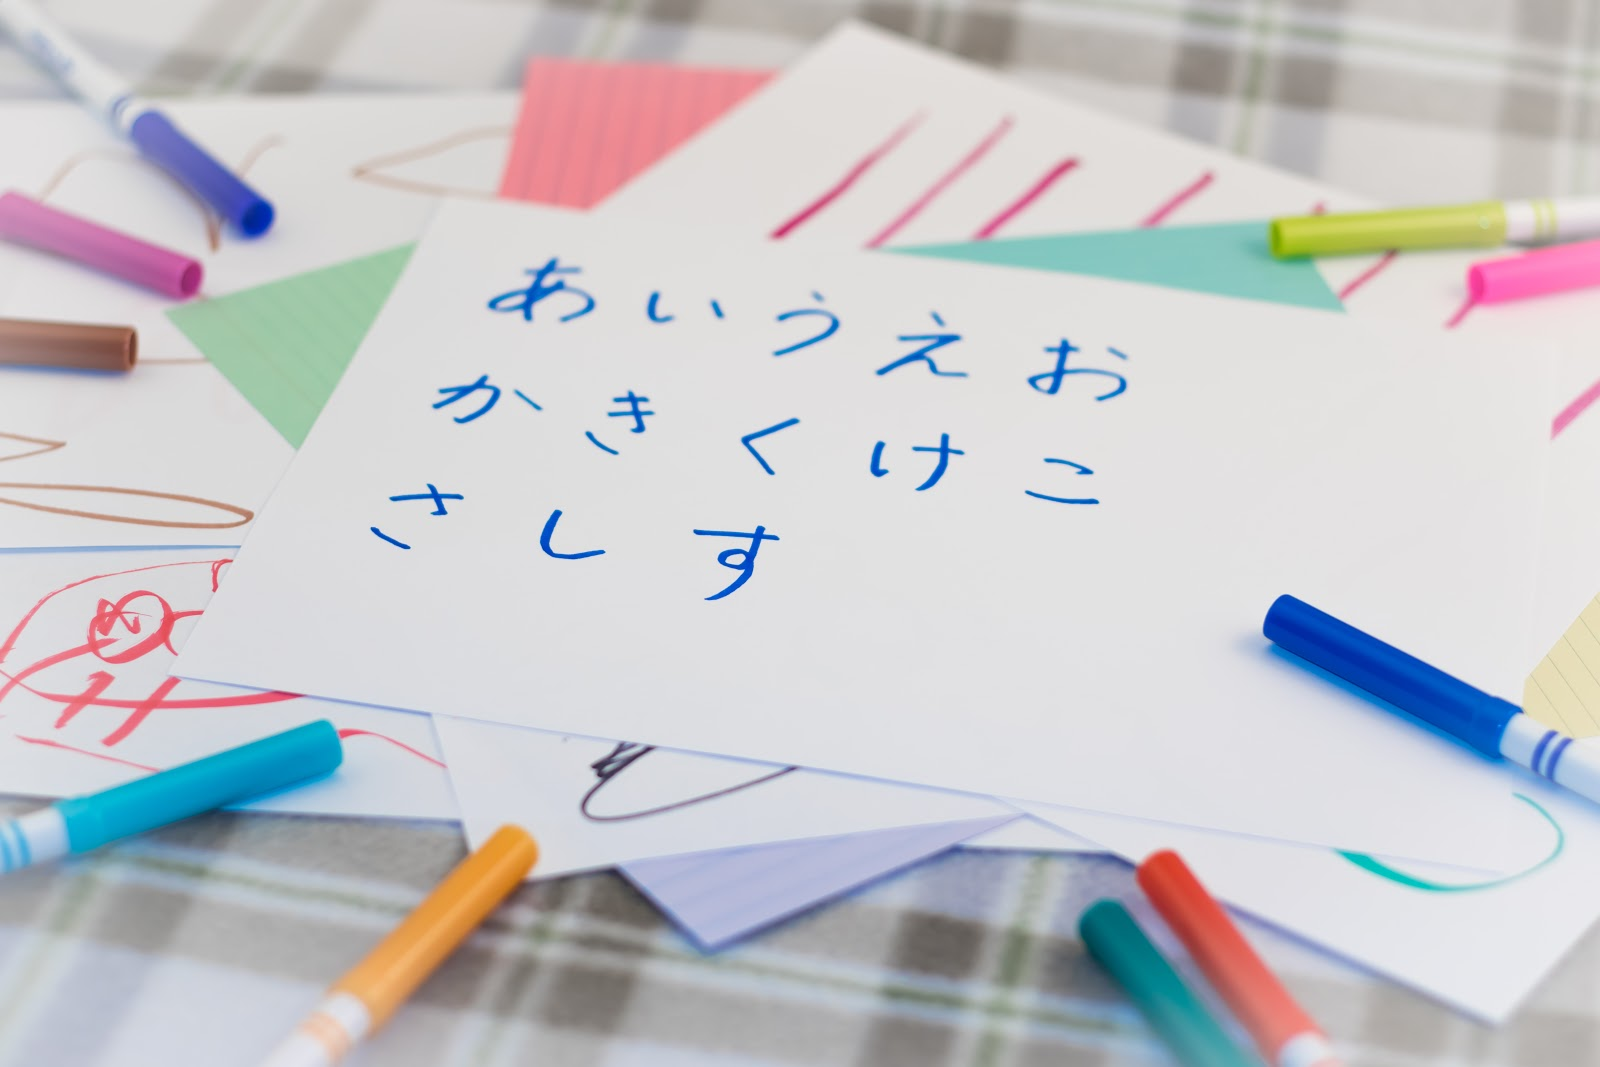 Another techniques of remembering Hiragana characters is writing on the paper.